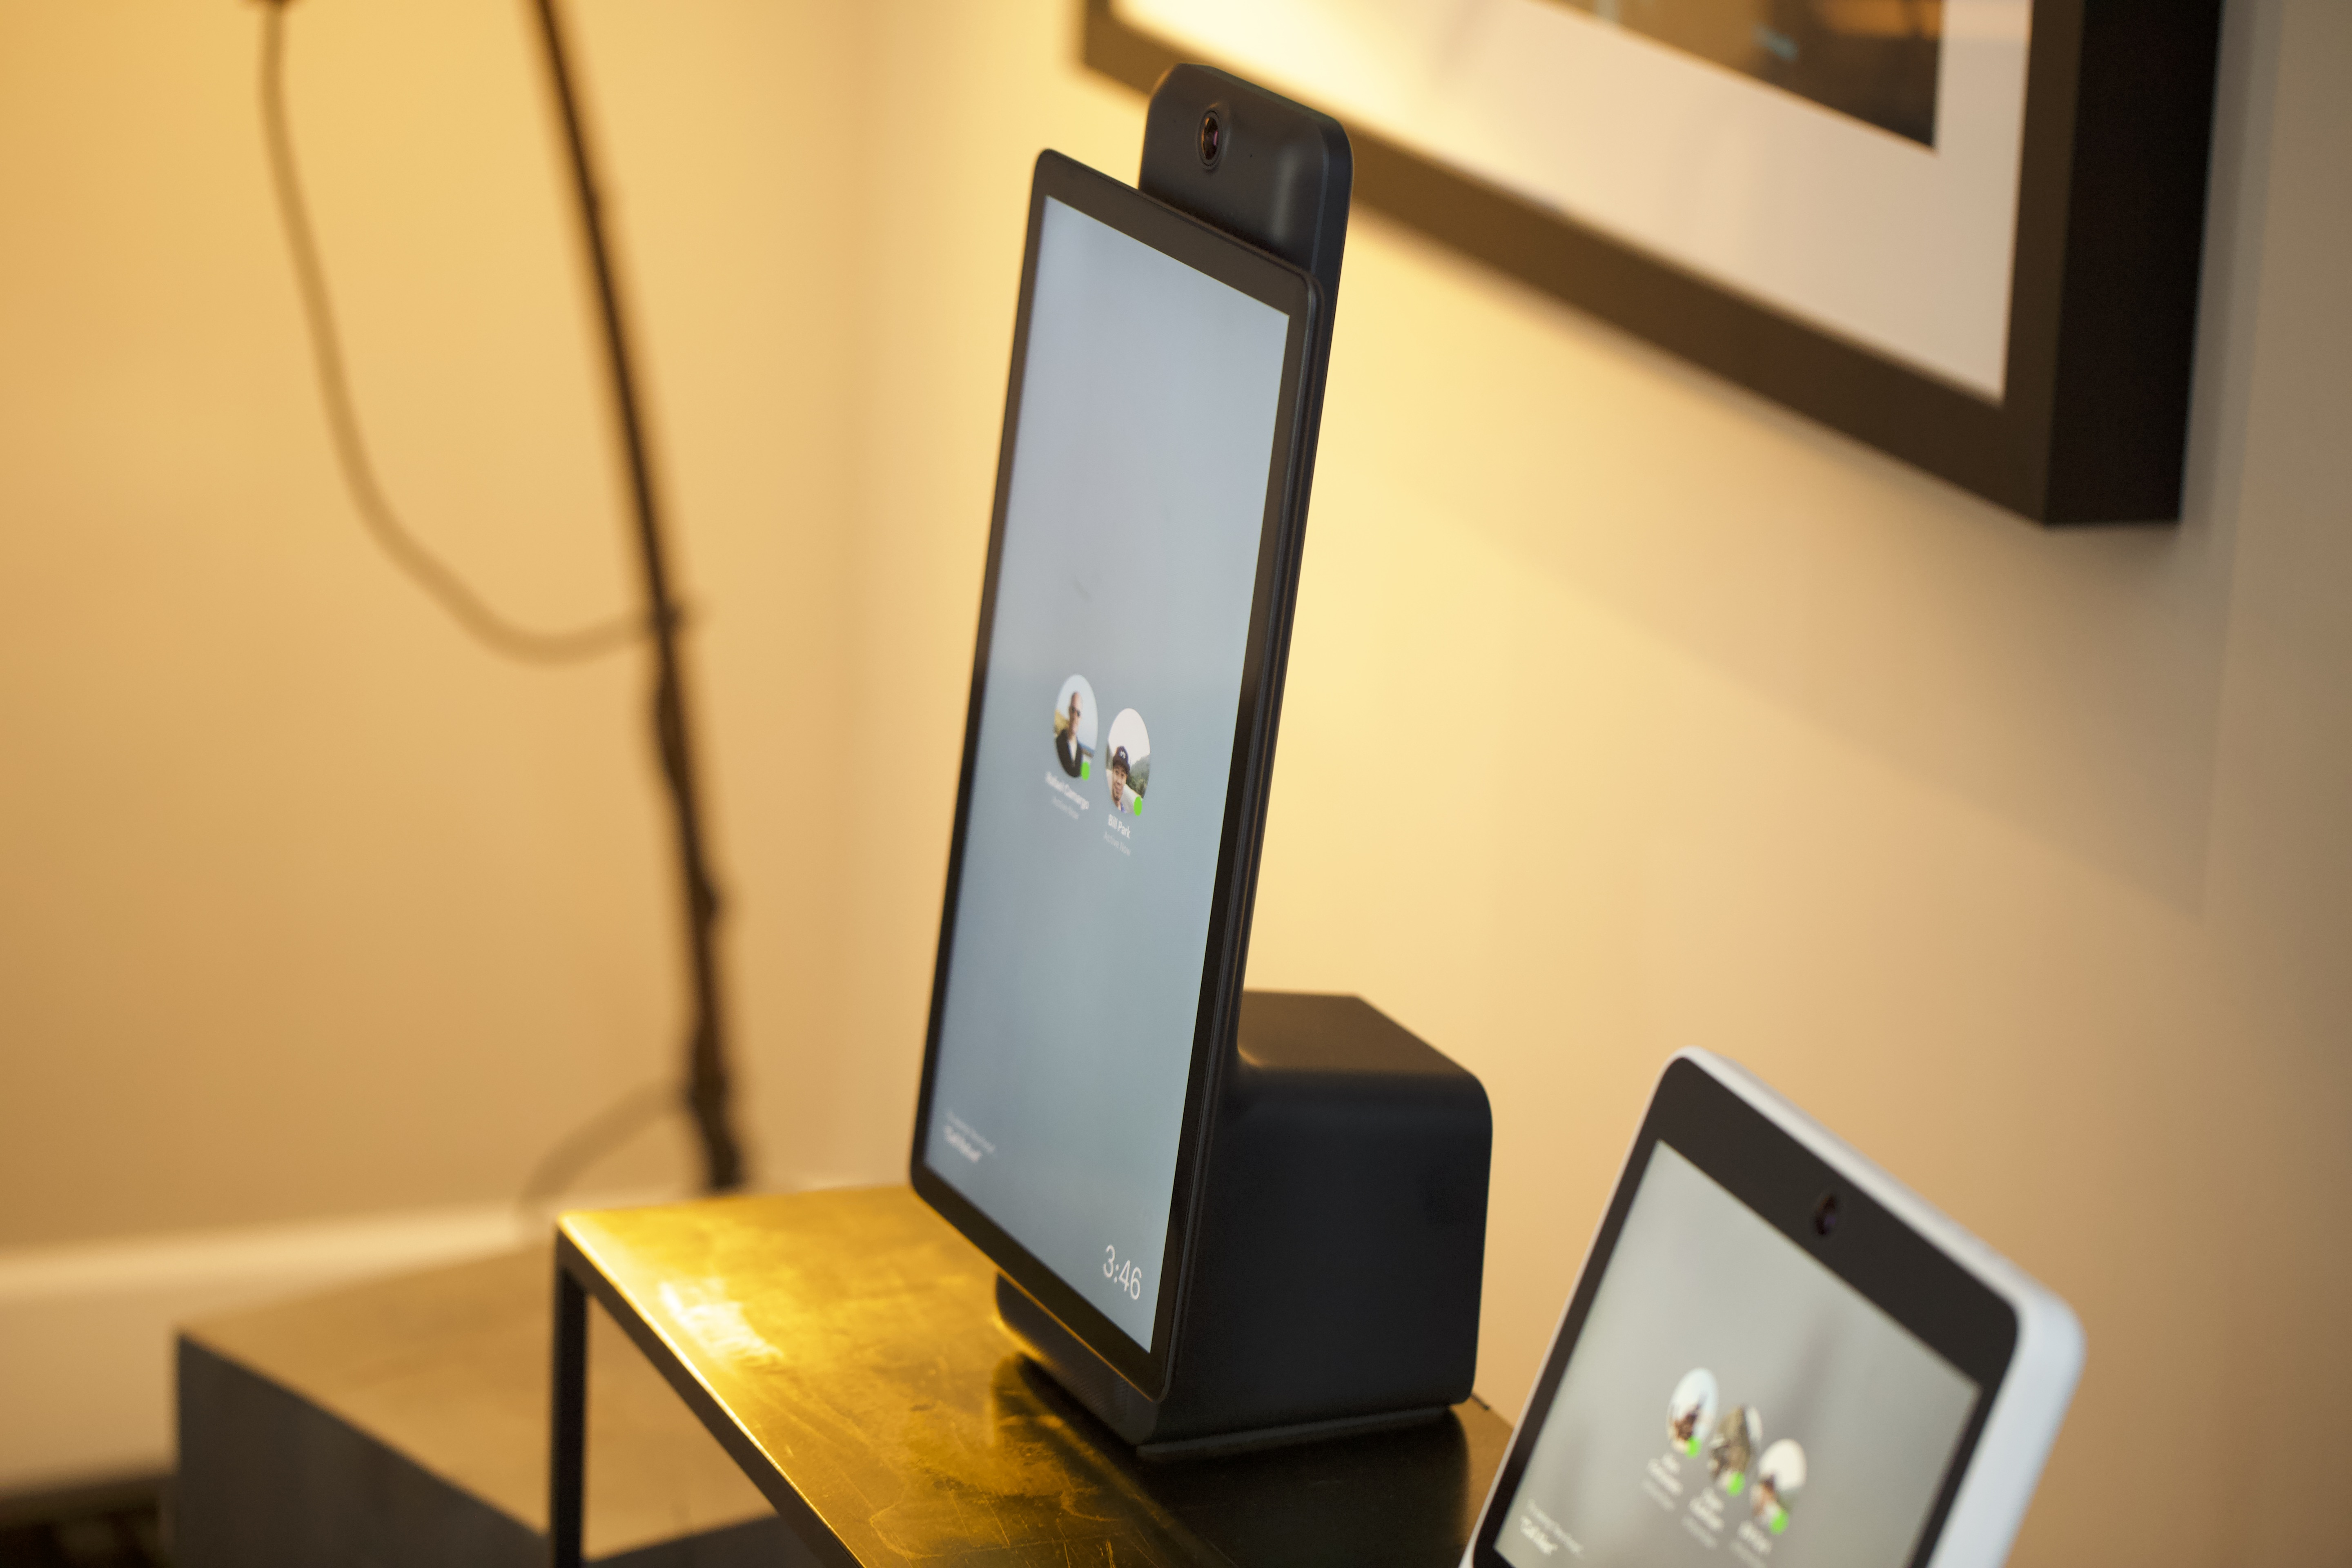 Facebook tries its hand at hardware with Portal CMB 4143